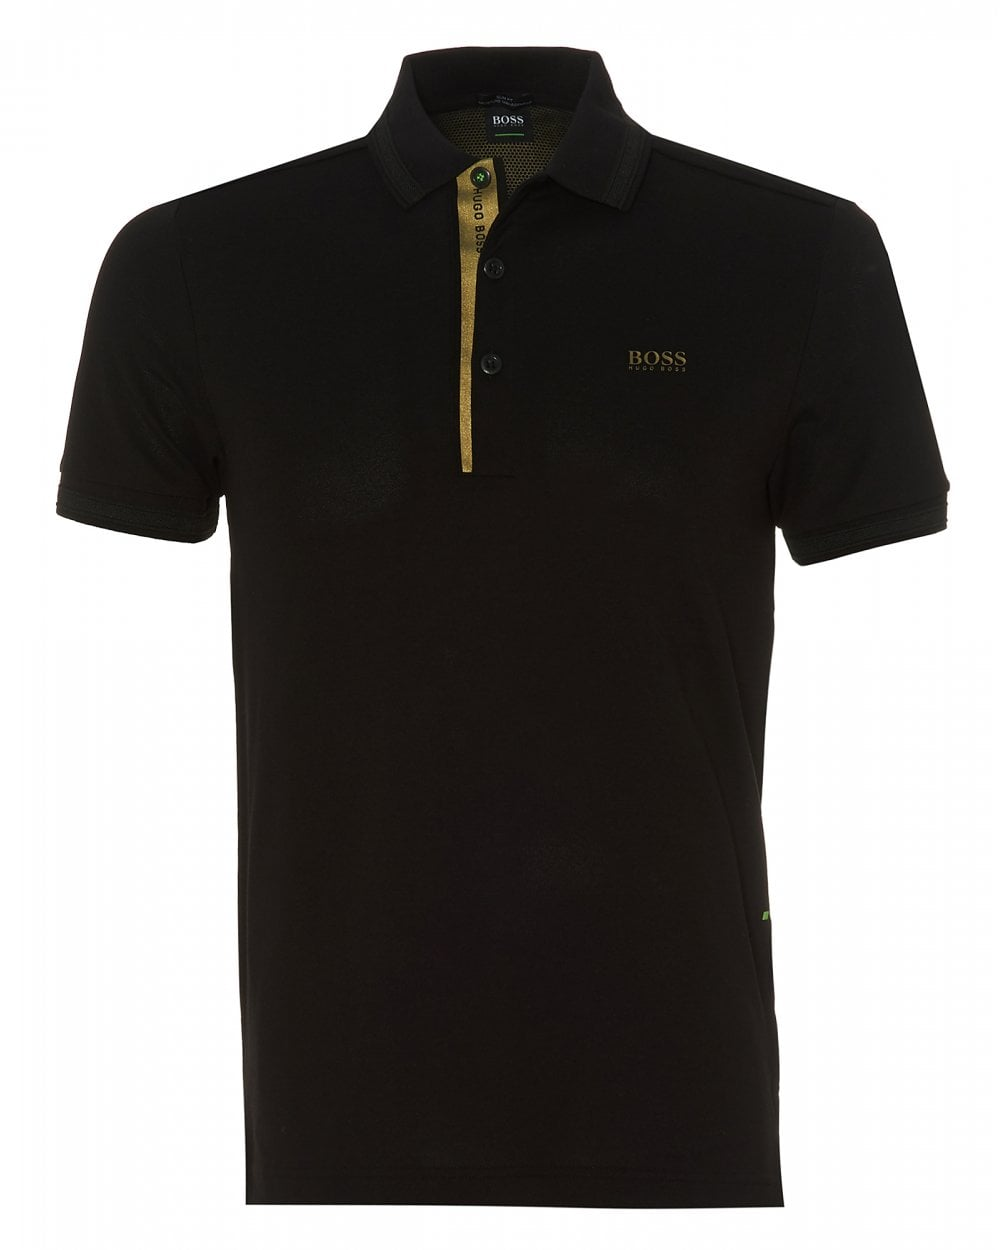 da603a6c25d49 BOSS Athleisure Mens Paddy Gold Capsule Slim Fit Black Polo Shirt